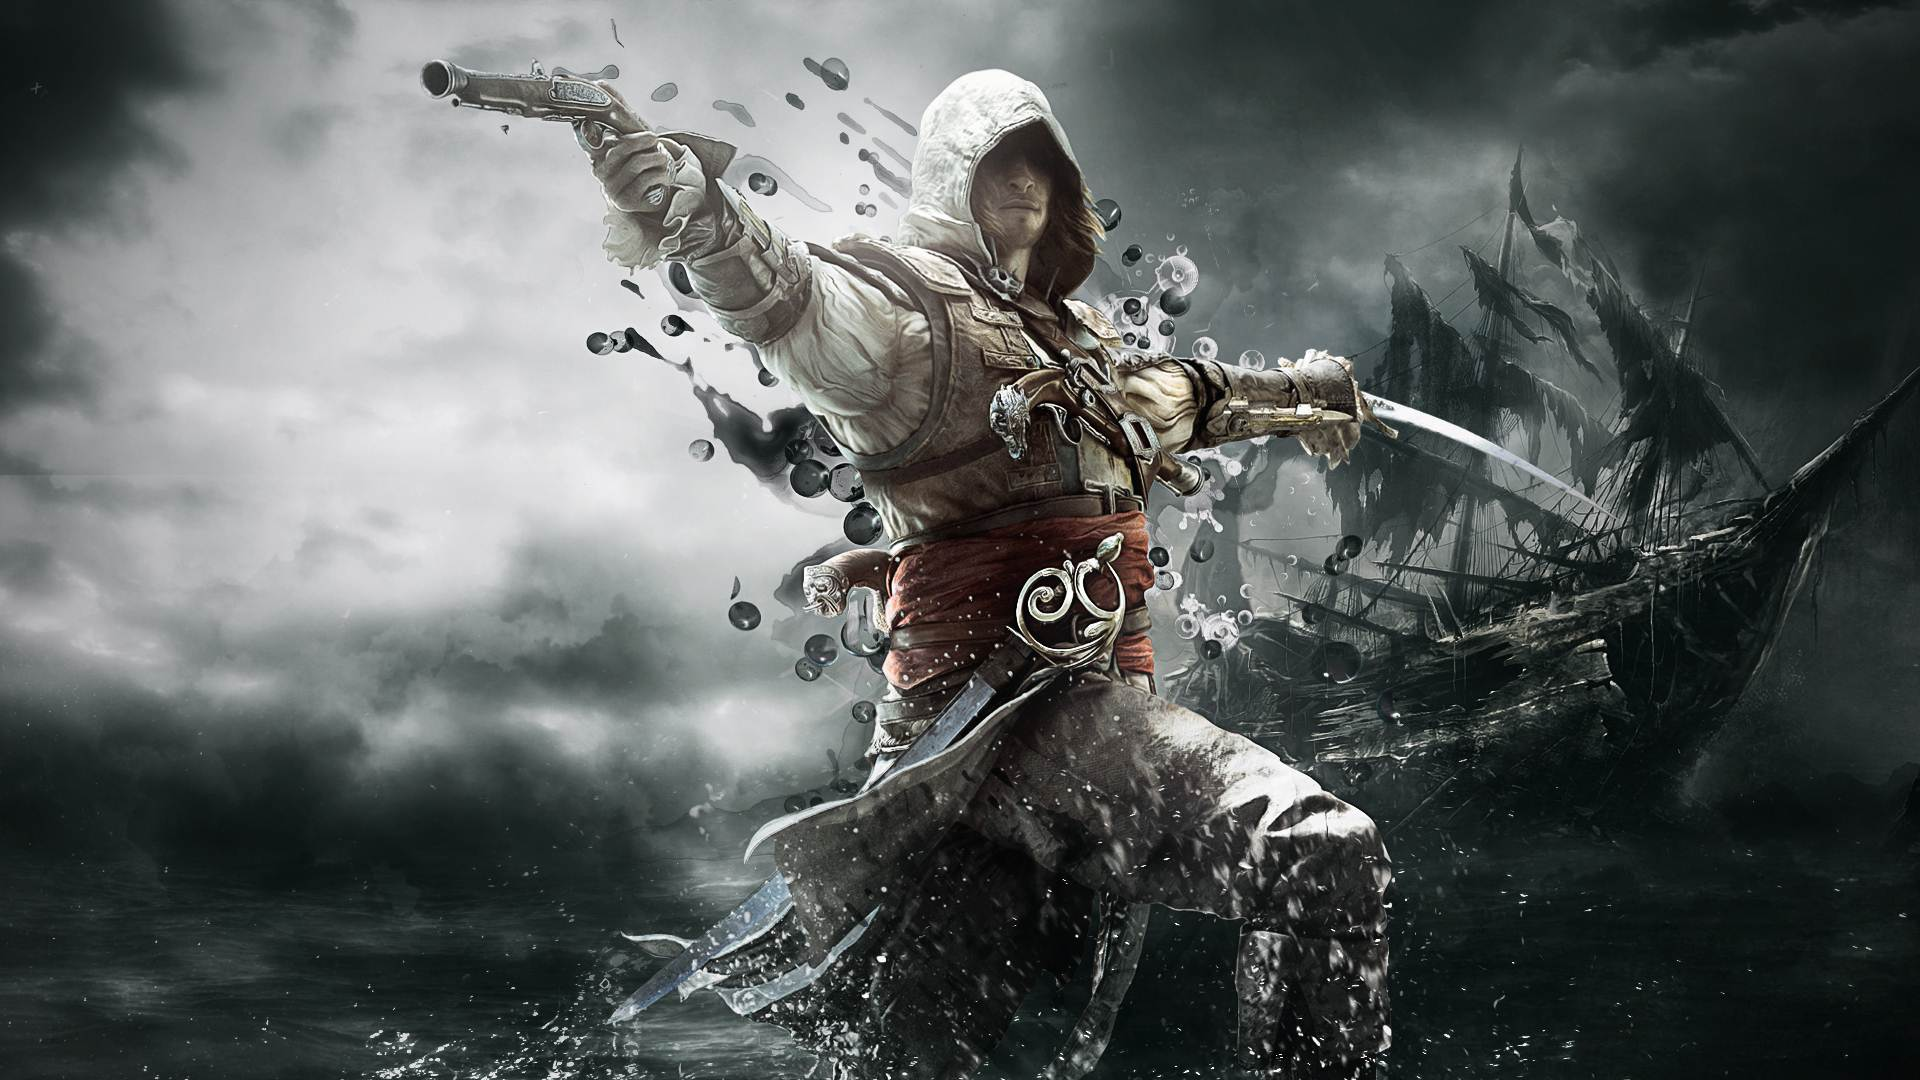 Assassins-Creed-4-Wallpaper.jpg